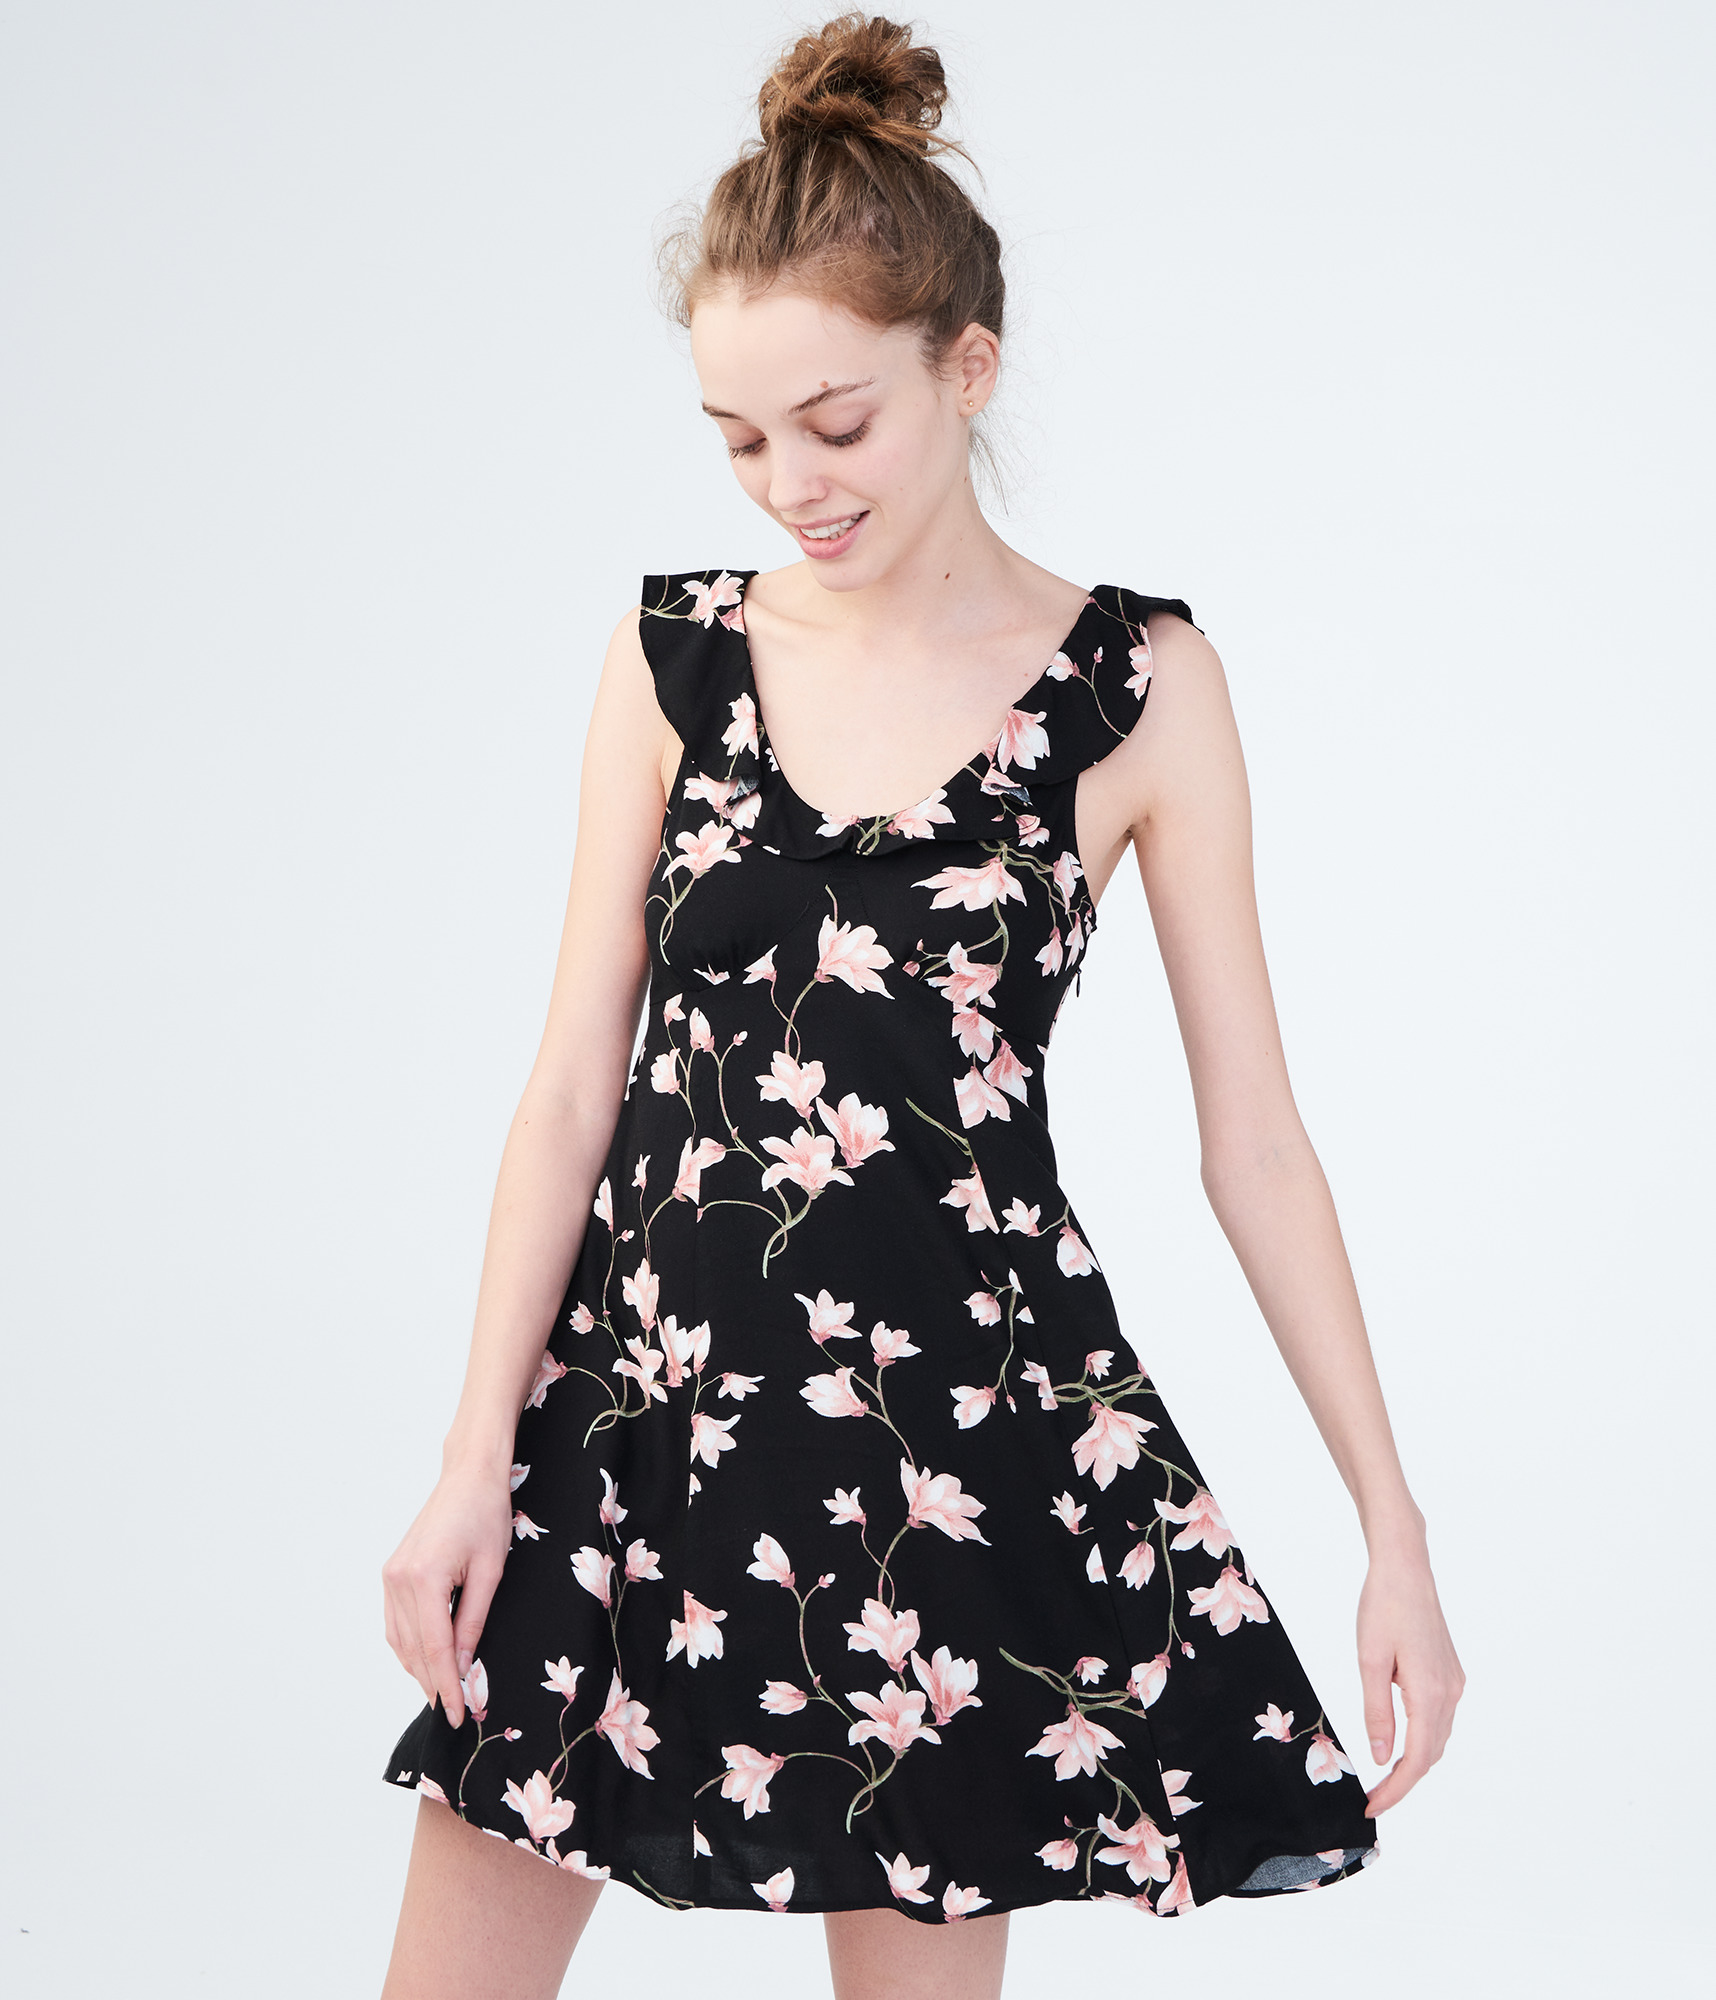 aeropostale-womens-floral-scoop-neck-fit-amp-flare-dress thumbnail 6